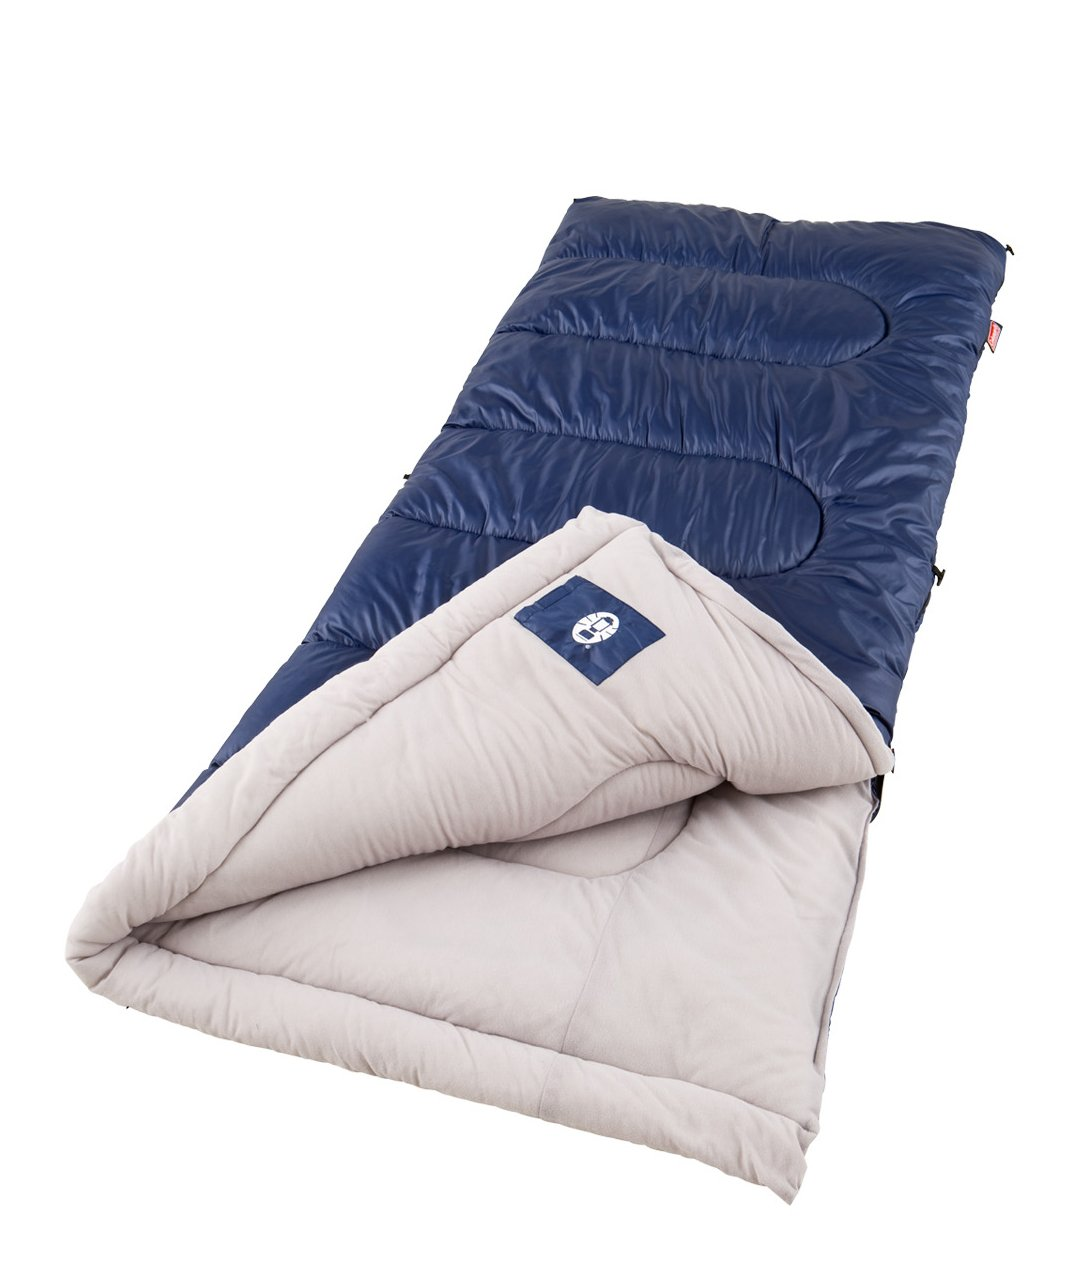 Coleman Brazos Cool Weather Sleeping Bag – Best Budget Sleeping Bag